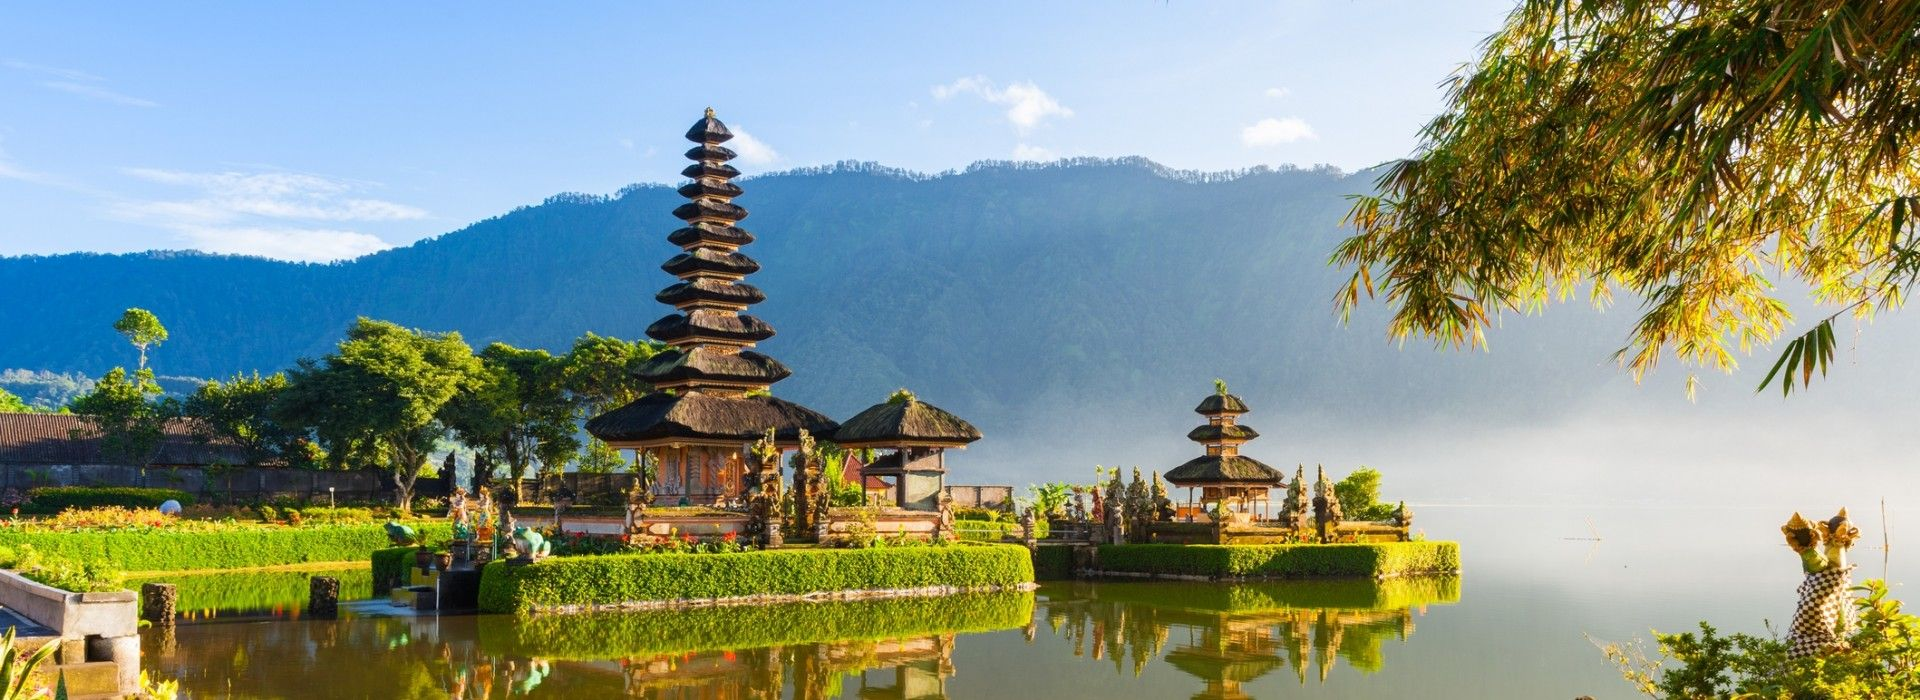 Active and outdoor Tours in Ubud